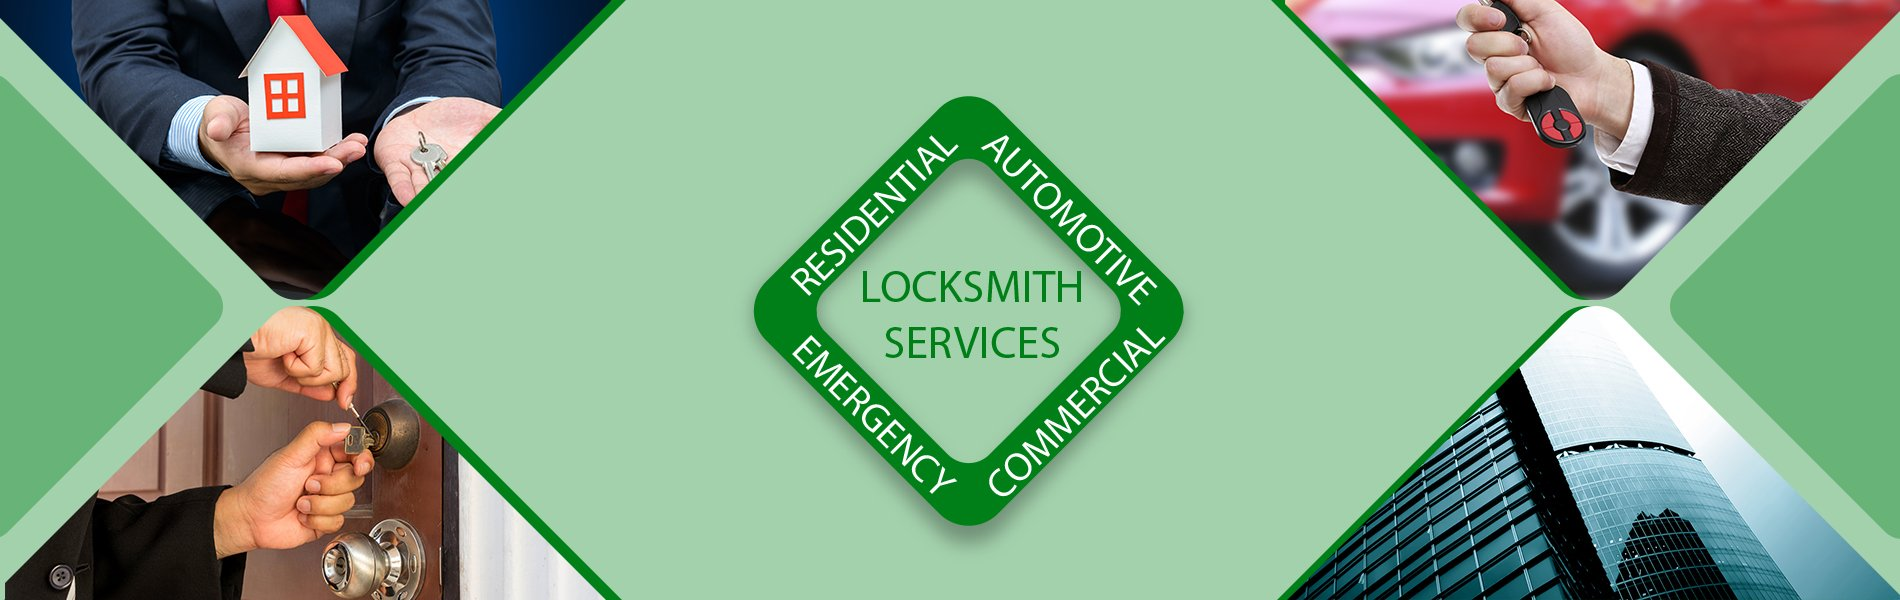 West Bridgewater Locksmith West Bridgewater, MA 508-392-4262